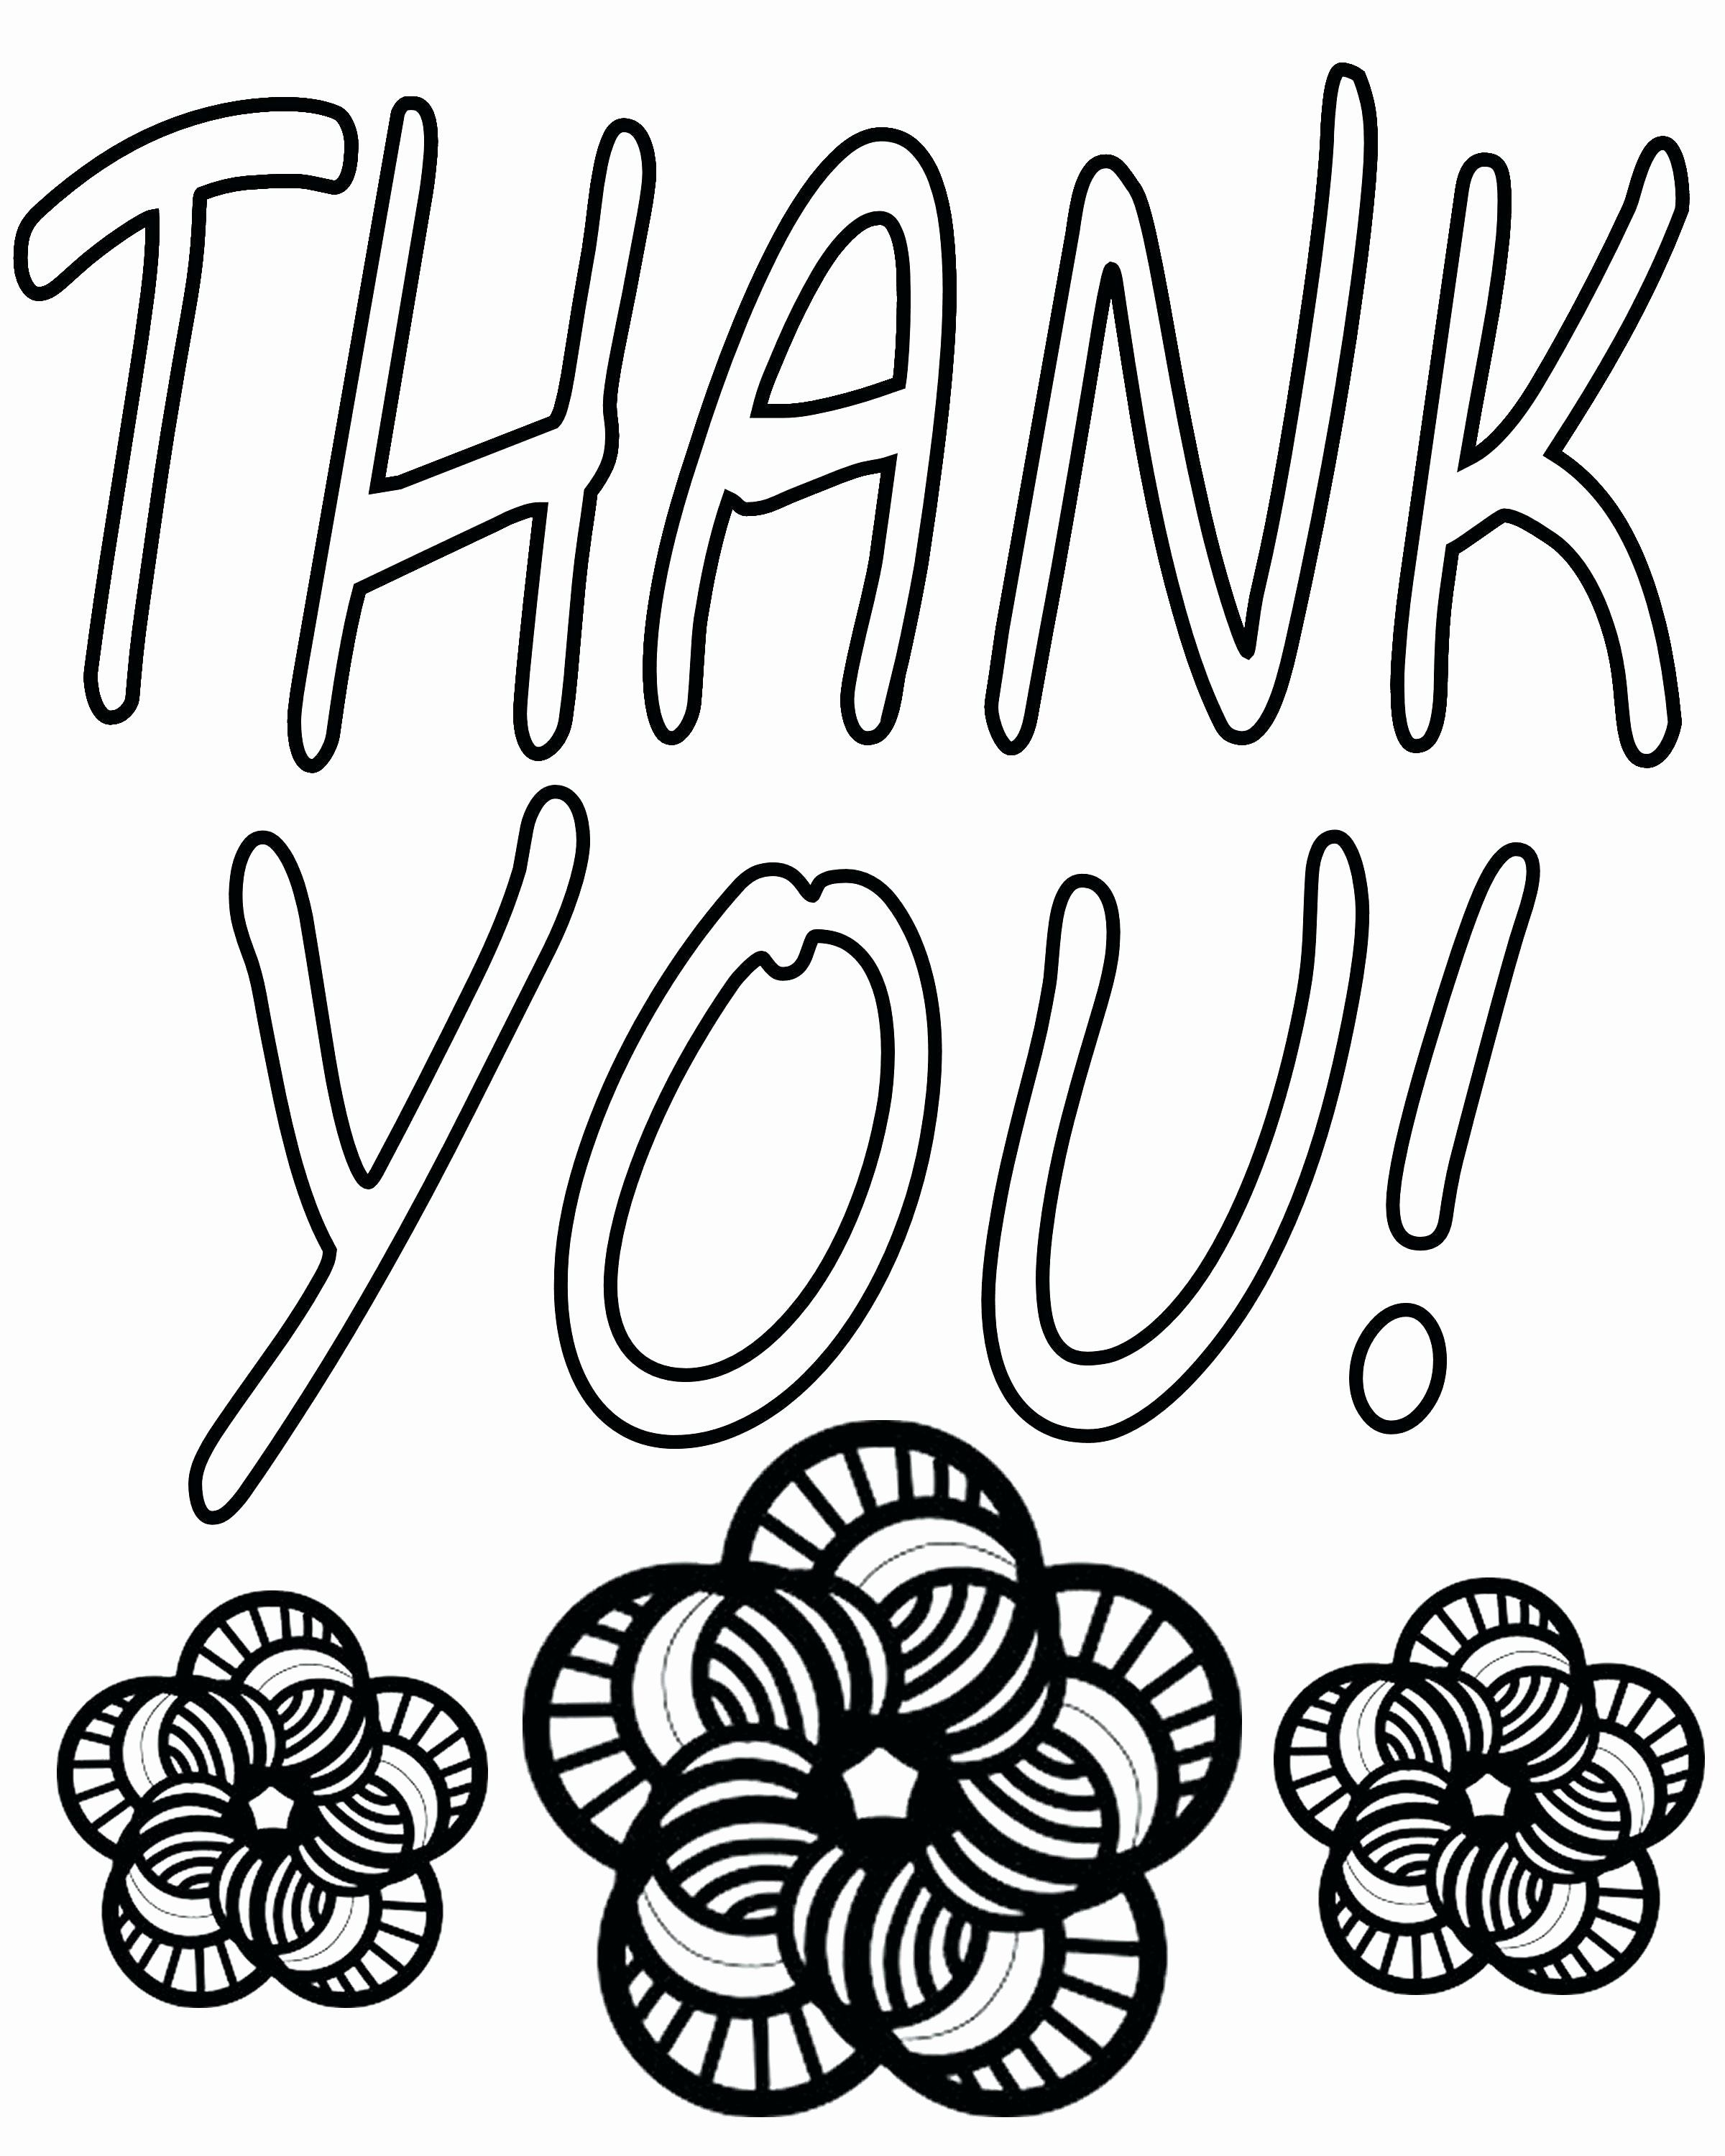 Coloring Thank You Cards In 2020 Coloring Pages For Kids